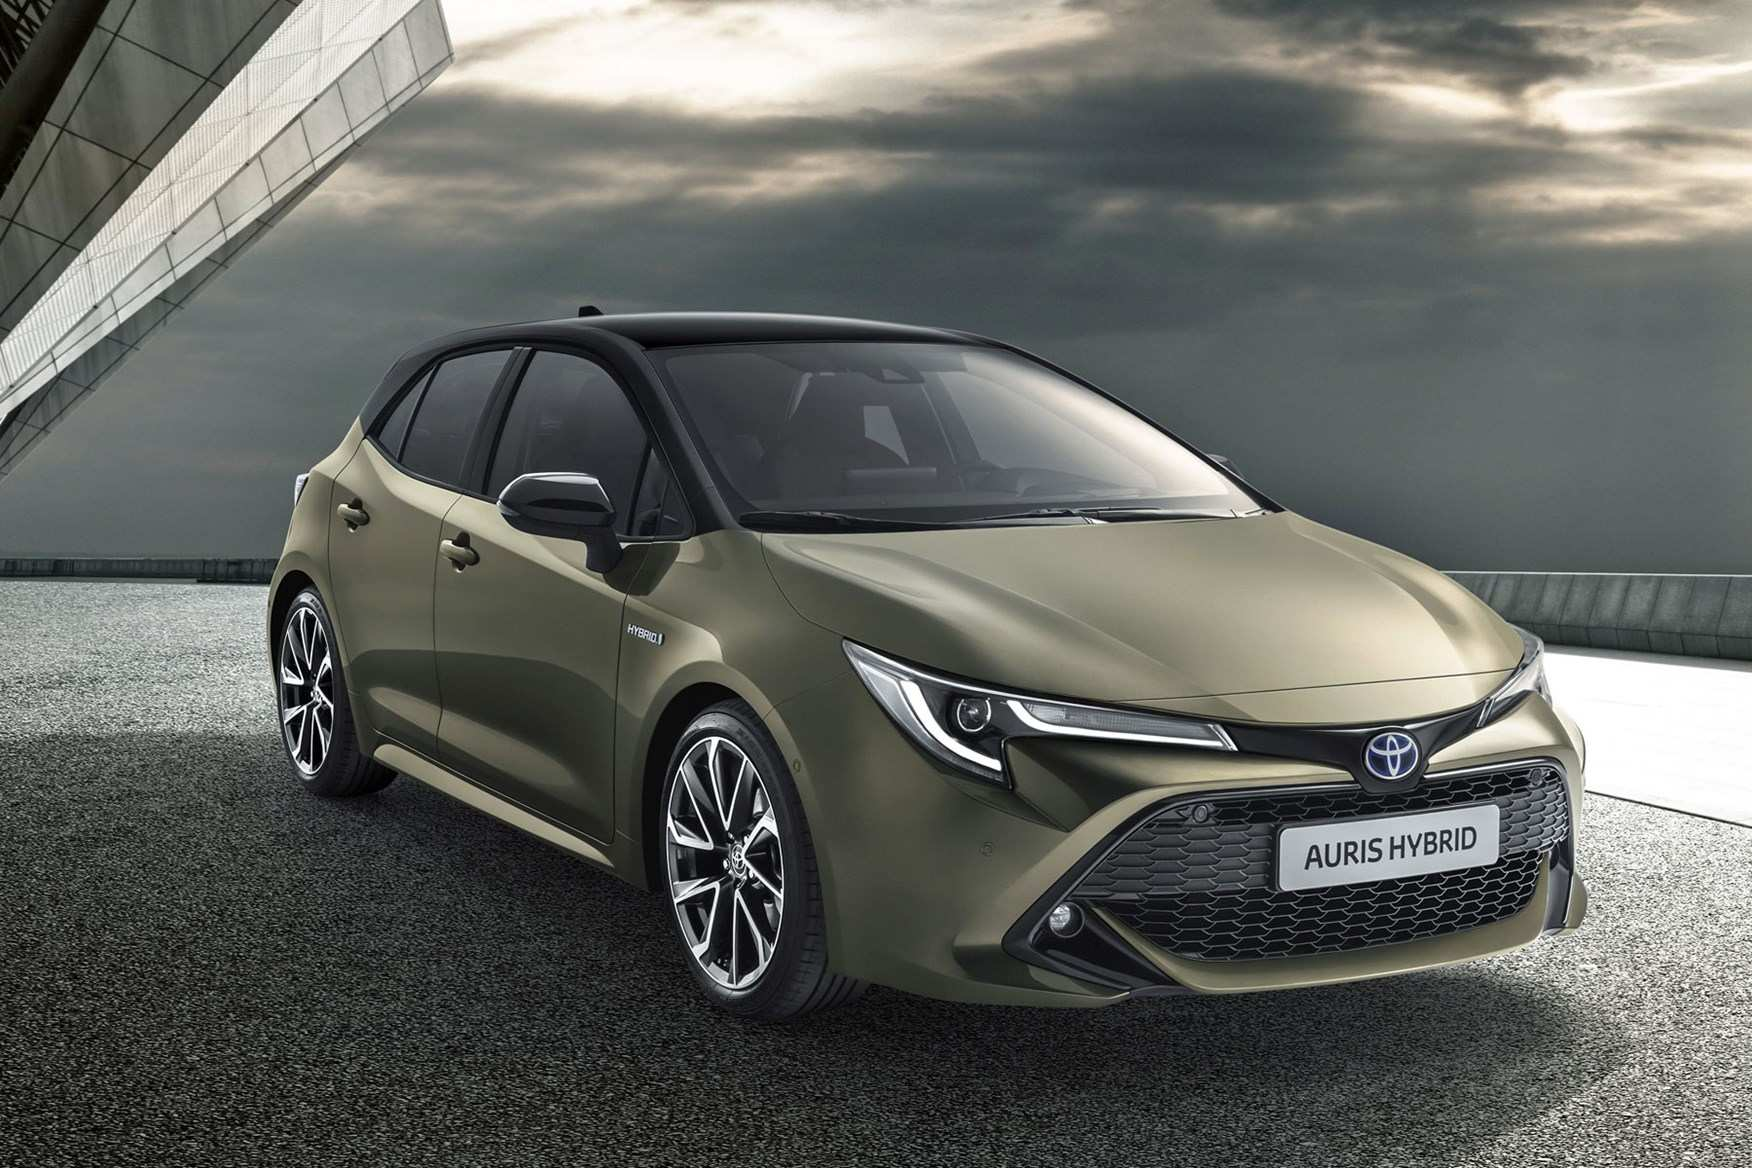 50 A Toyota Corolla 2019 Uk Price Design And Review